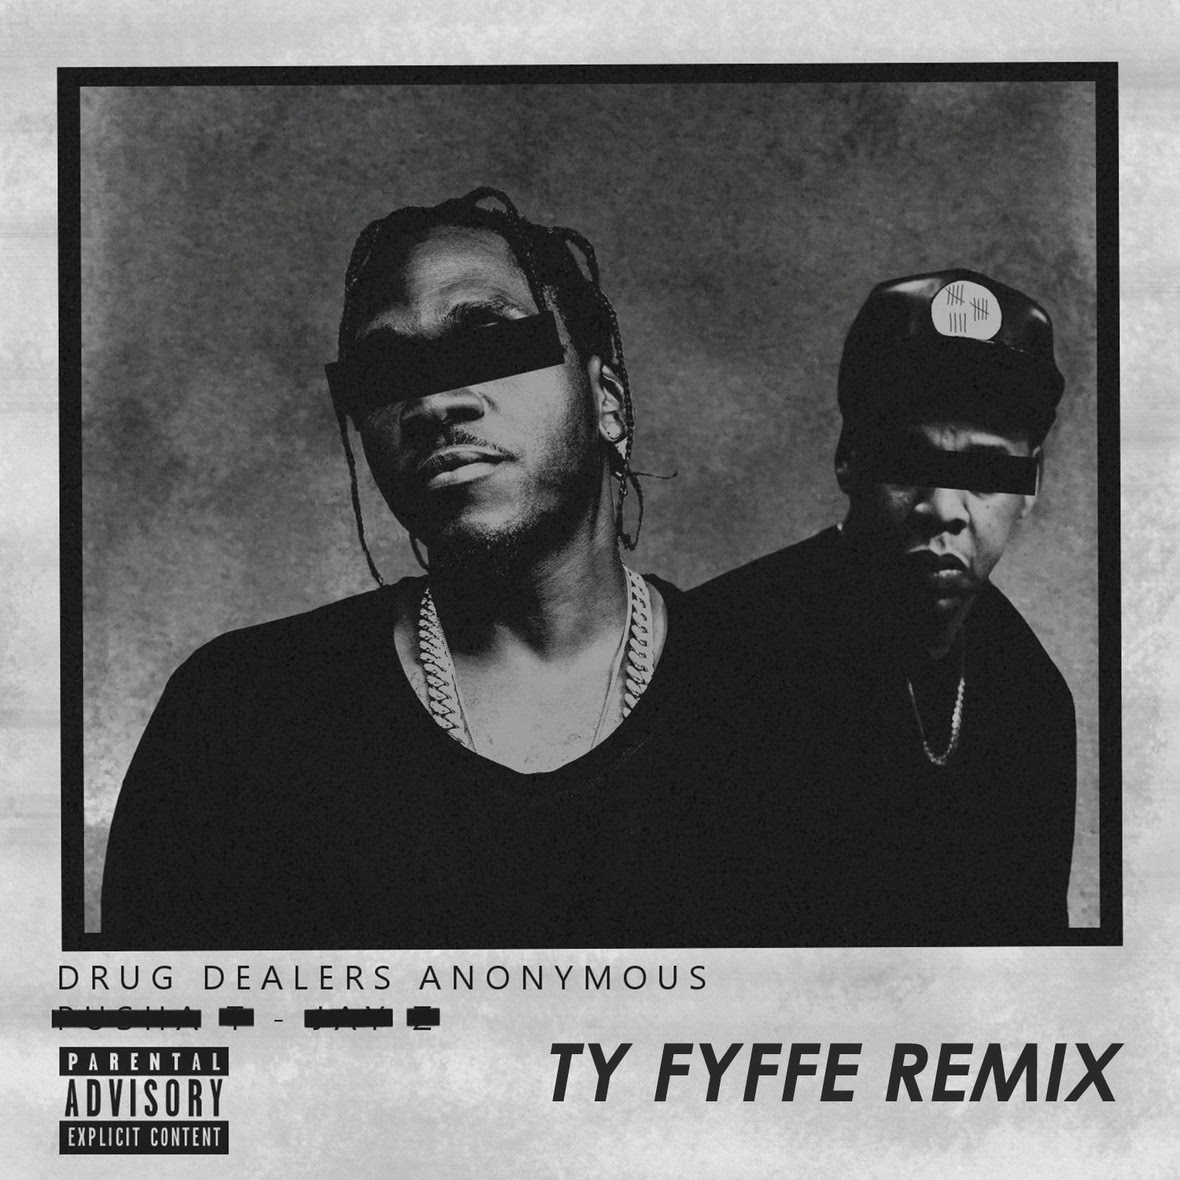 Ty Fyffe (@TyFyffe) - Drug Dealer Anonymous Remix